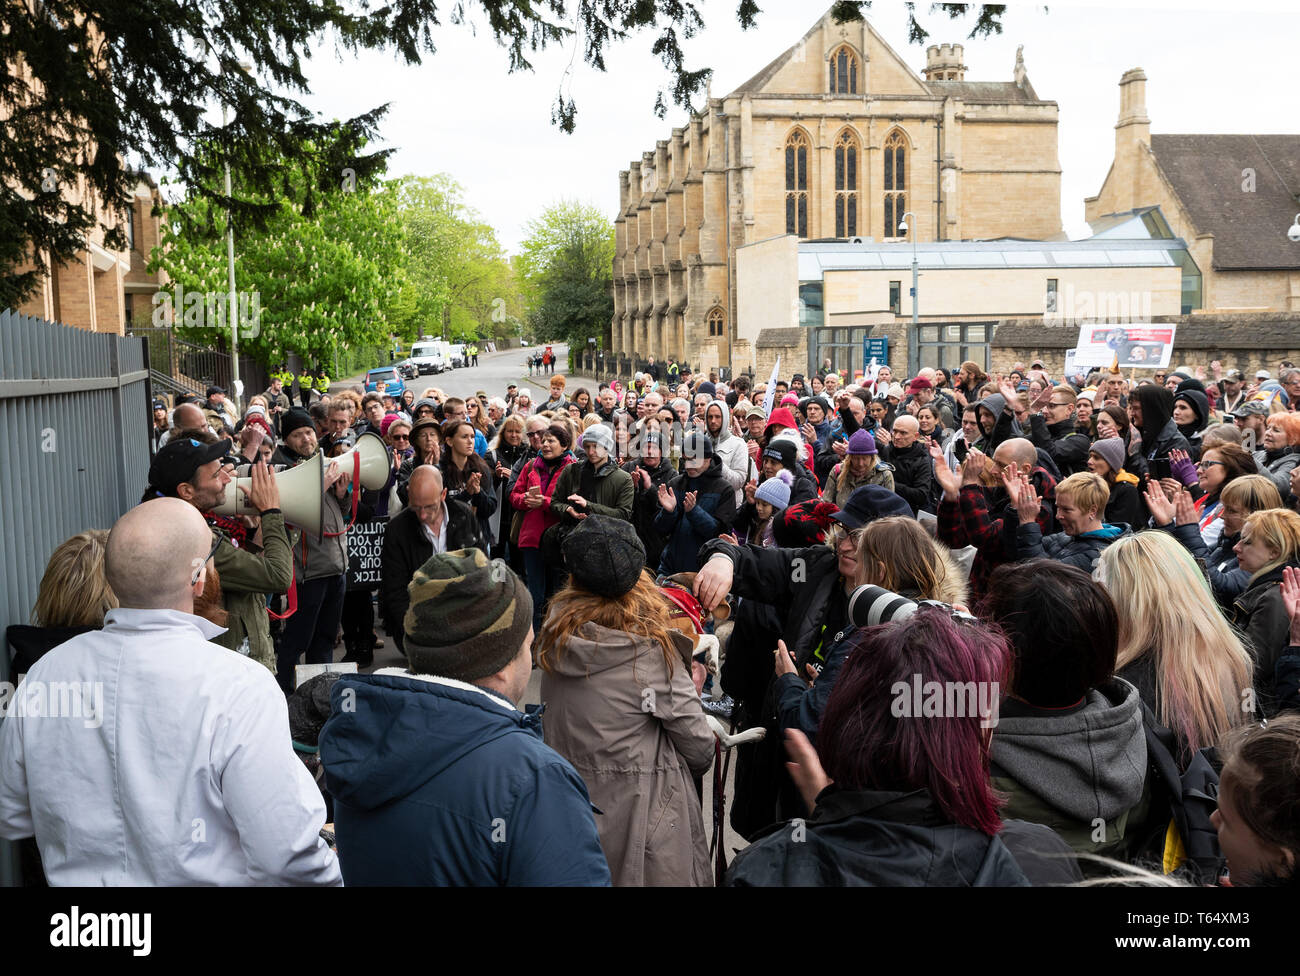 Oxford World Day for Animals in Laboratories. Rally outside the Oxford University biomedical laboratory. - Stock Image